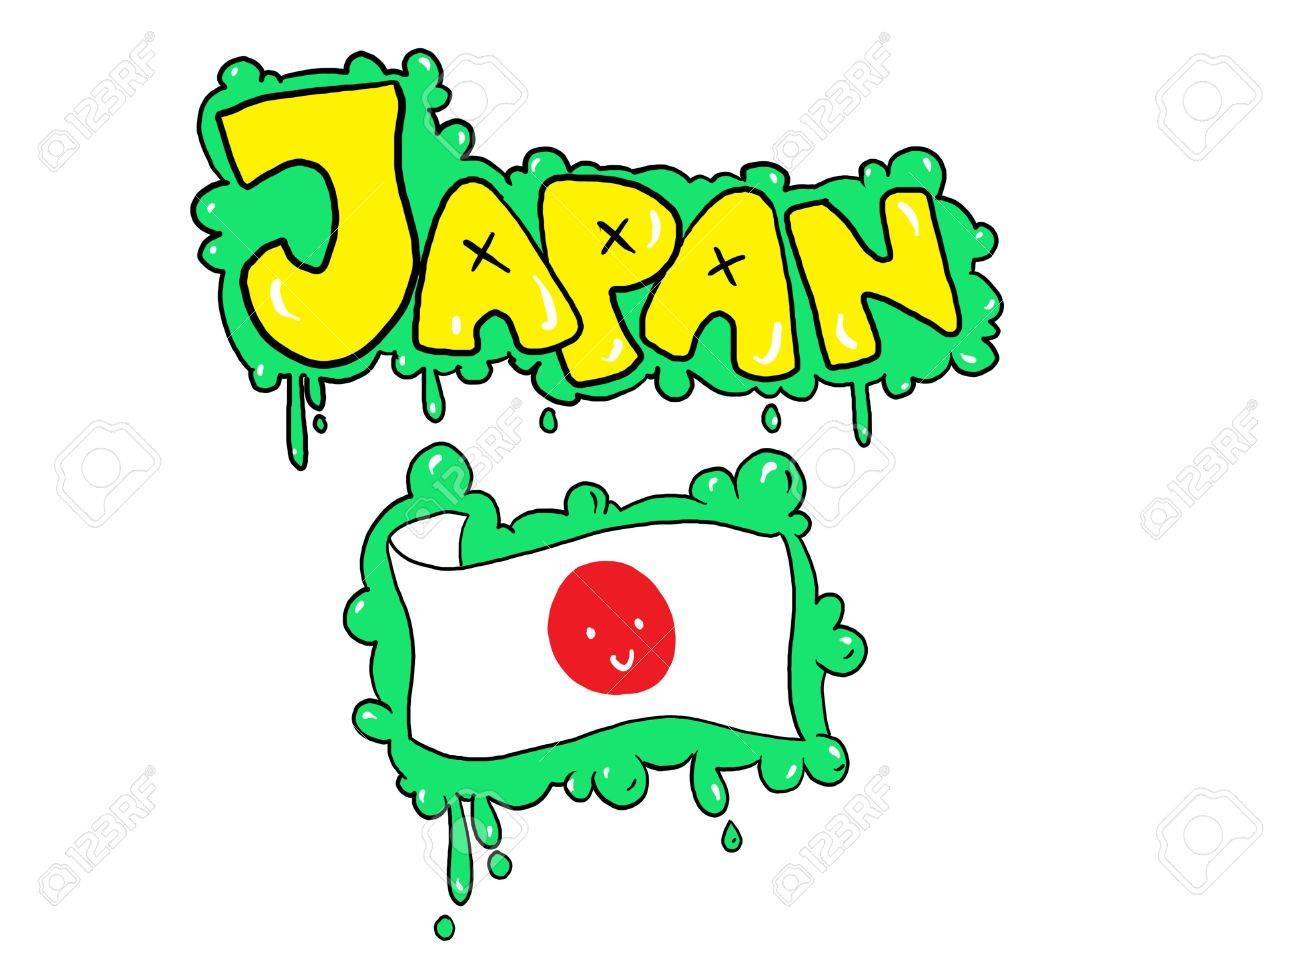 Graffiti Like Drawing Of Japan S Flag Stock Photo Picture And